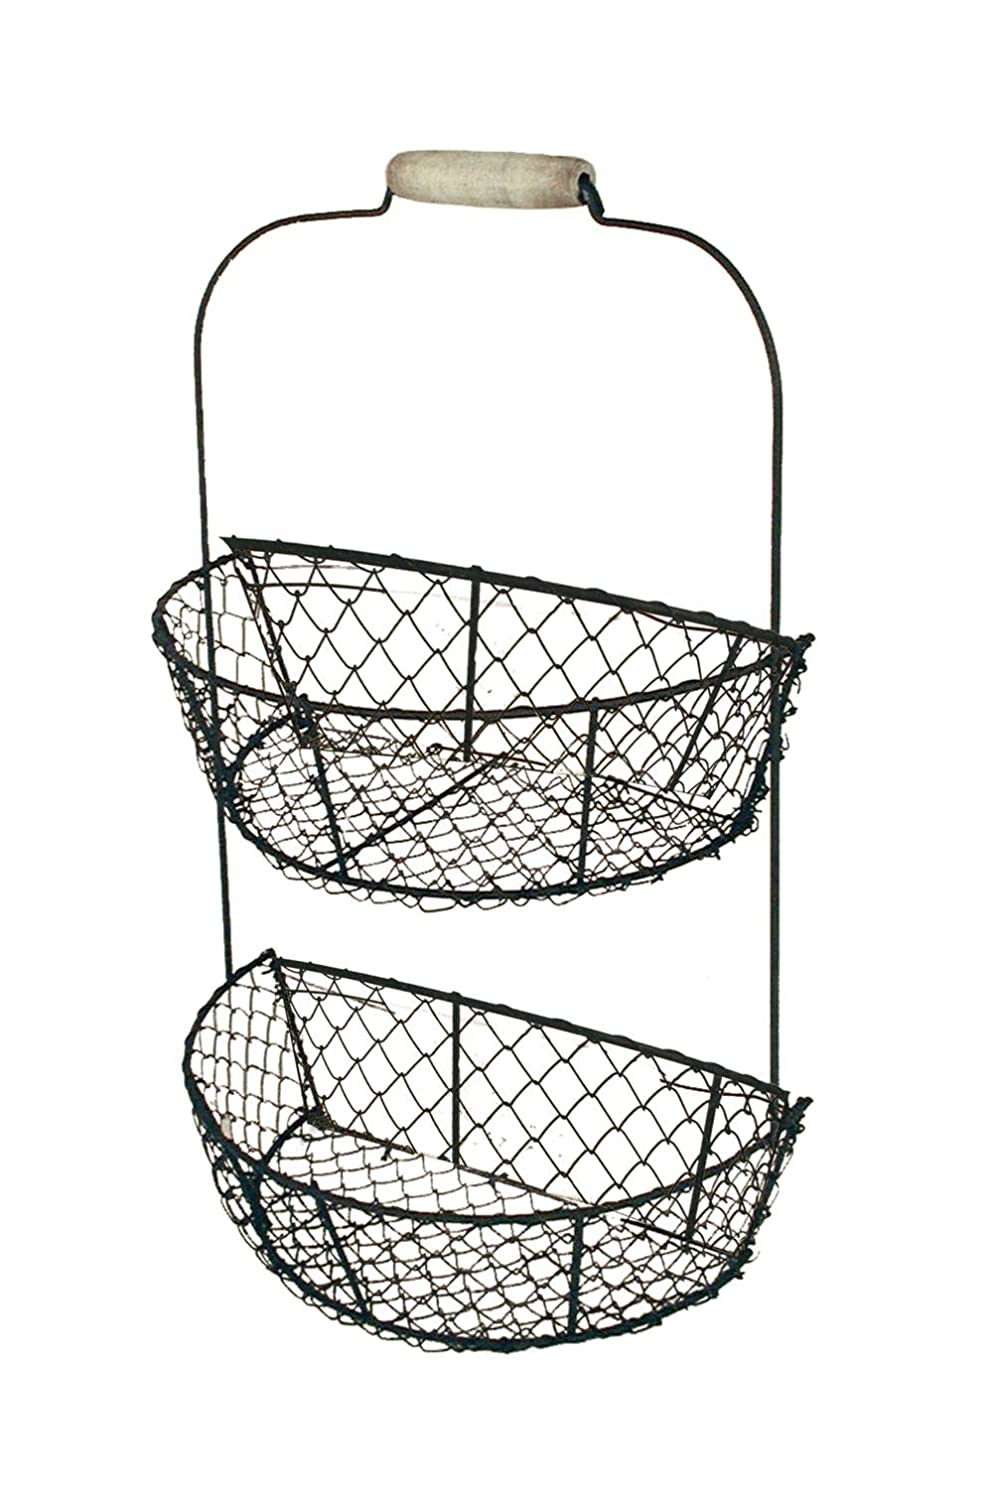 Lovely Amazon.com : Ohio Wholesale Chicken Wire Wall Basket, from our  FE04